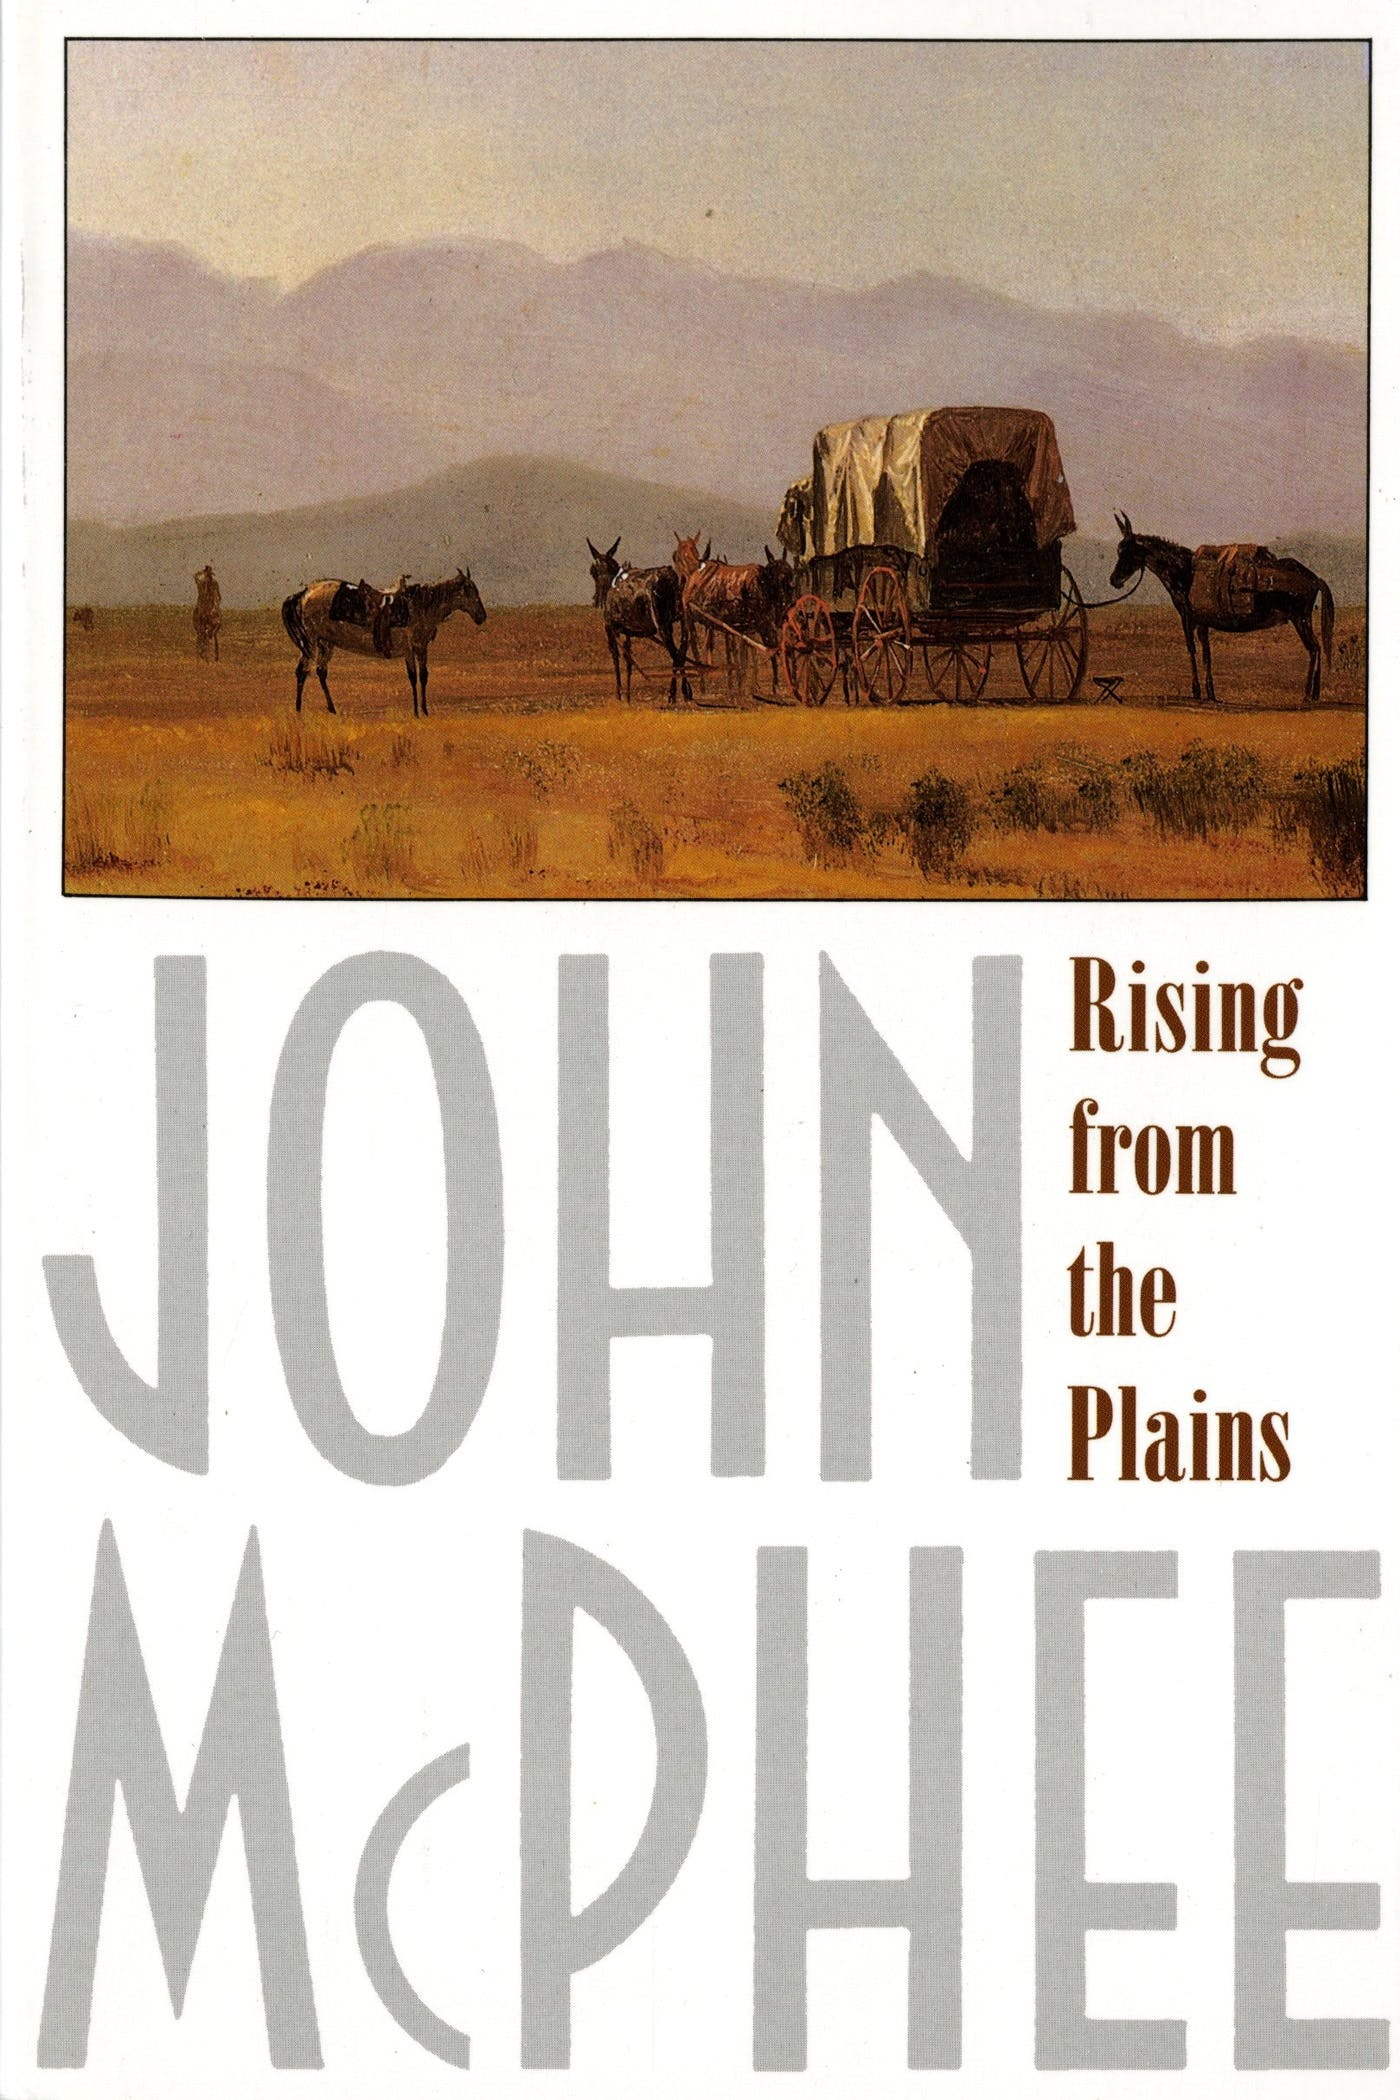 Image of Rising from the Plains